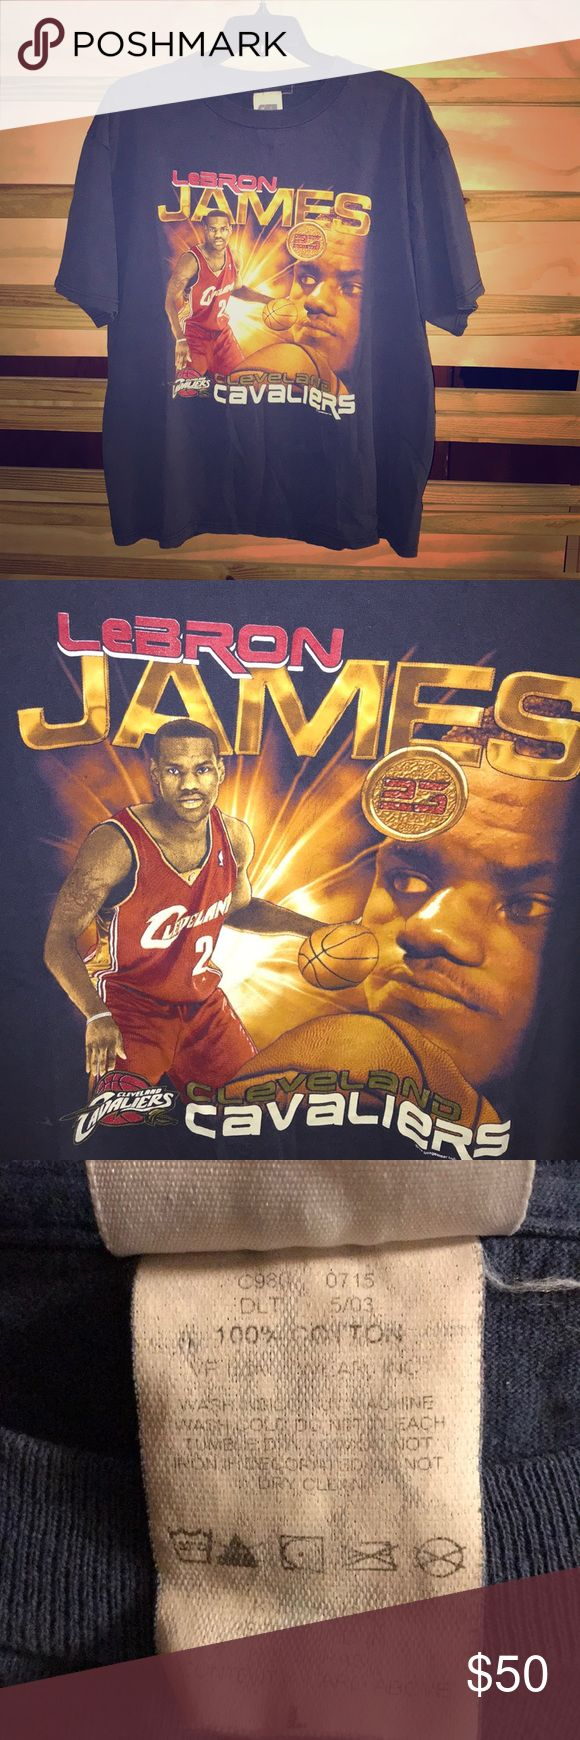 Lebron James Rookie Year Tee LeBron James rookie year T-shirt with the Cleveland Cavaliers. Day on the tag indicates May 2003. Condition 9/10 Lebron James Shirts Tees - Short Sleeve